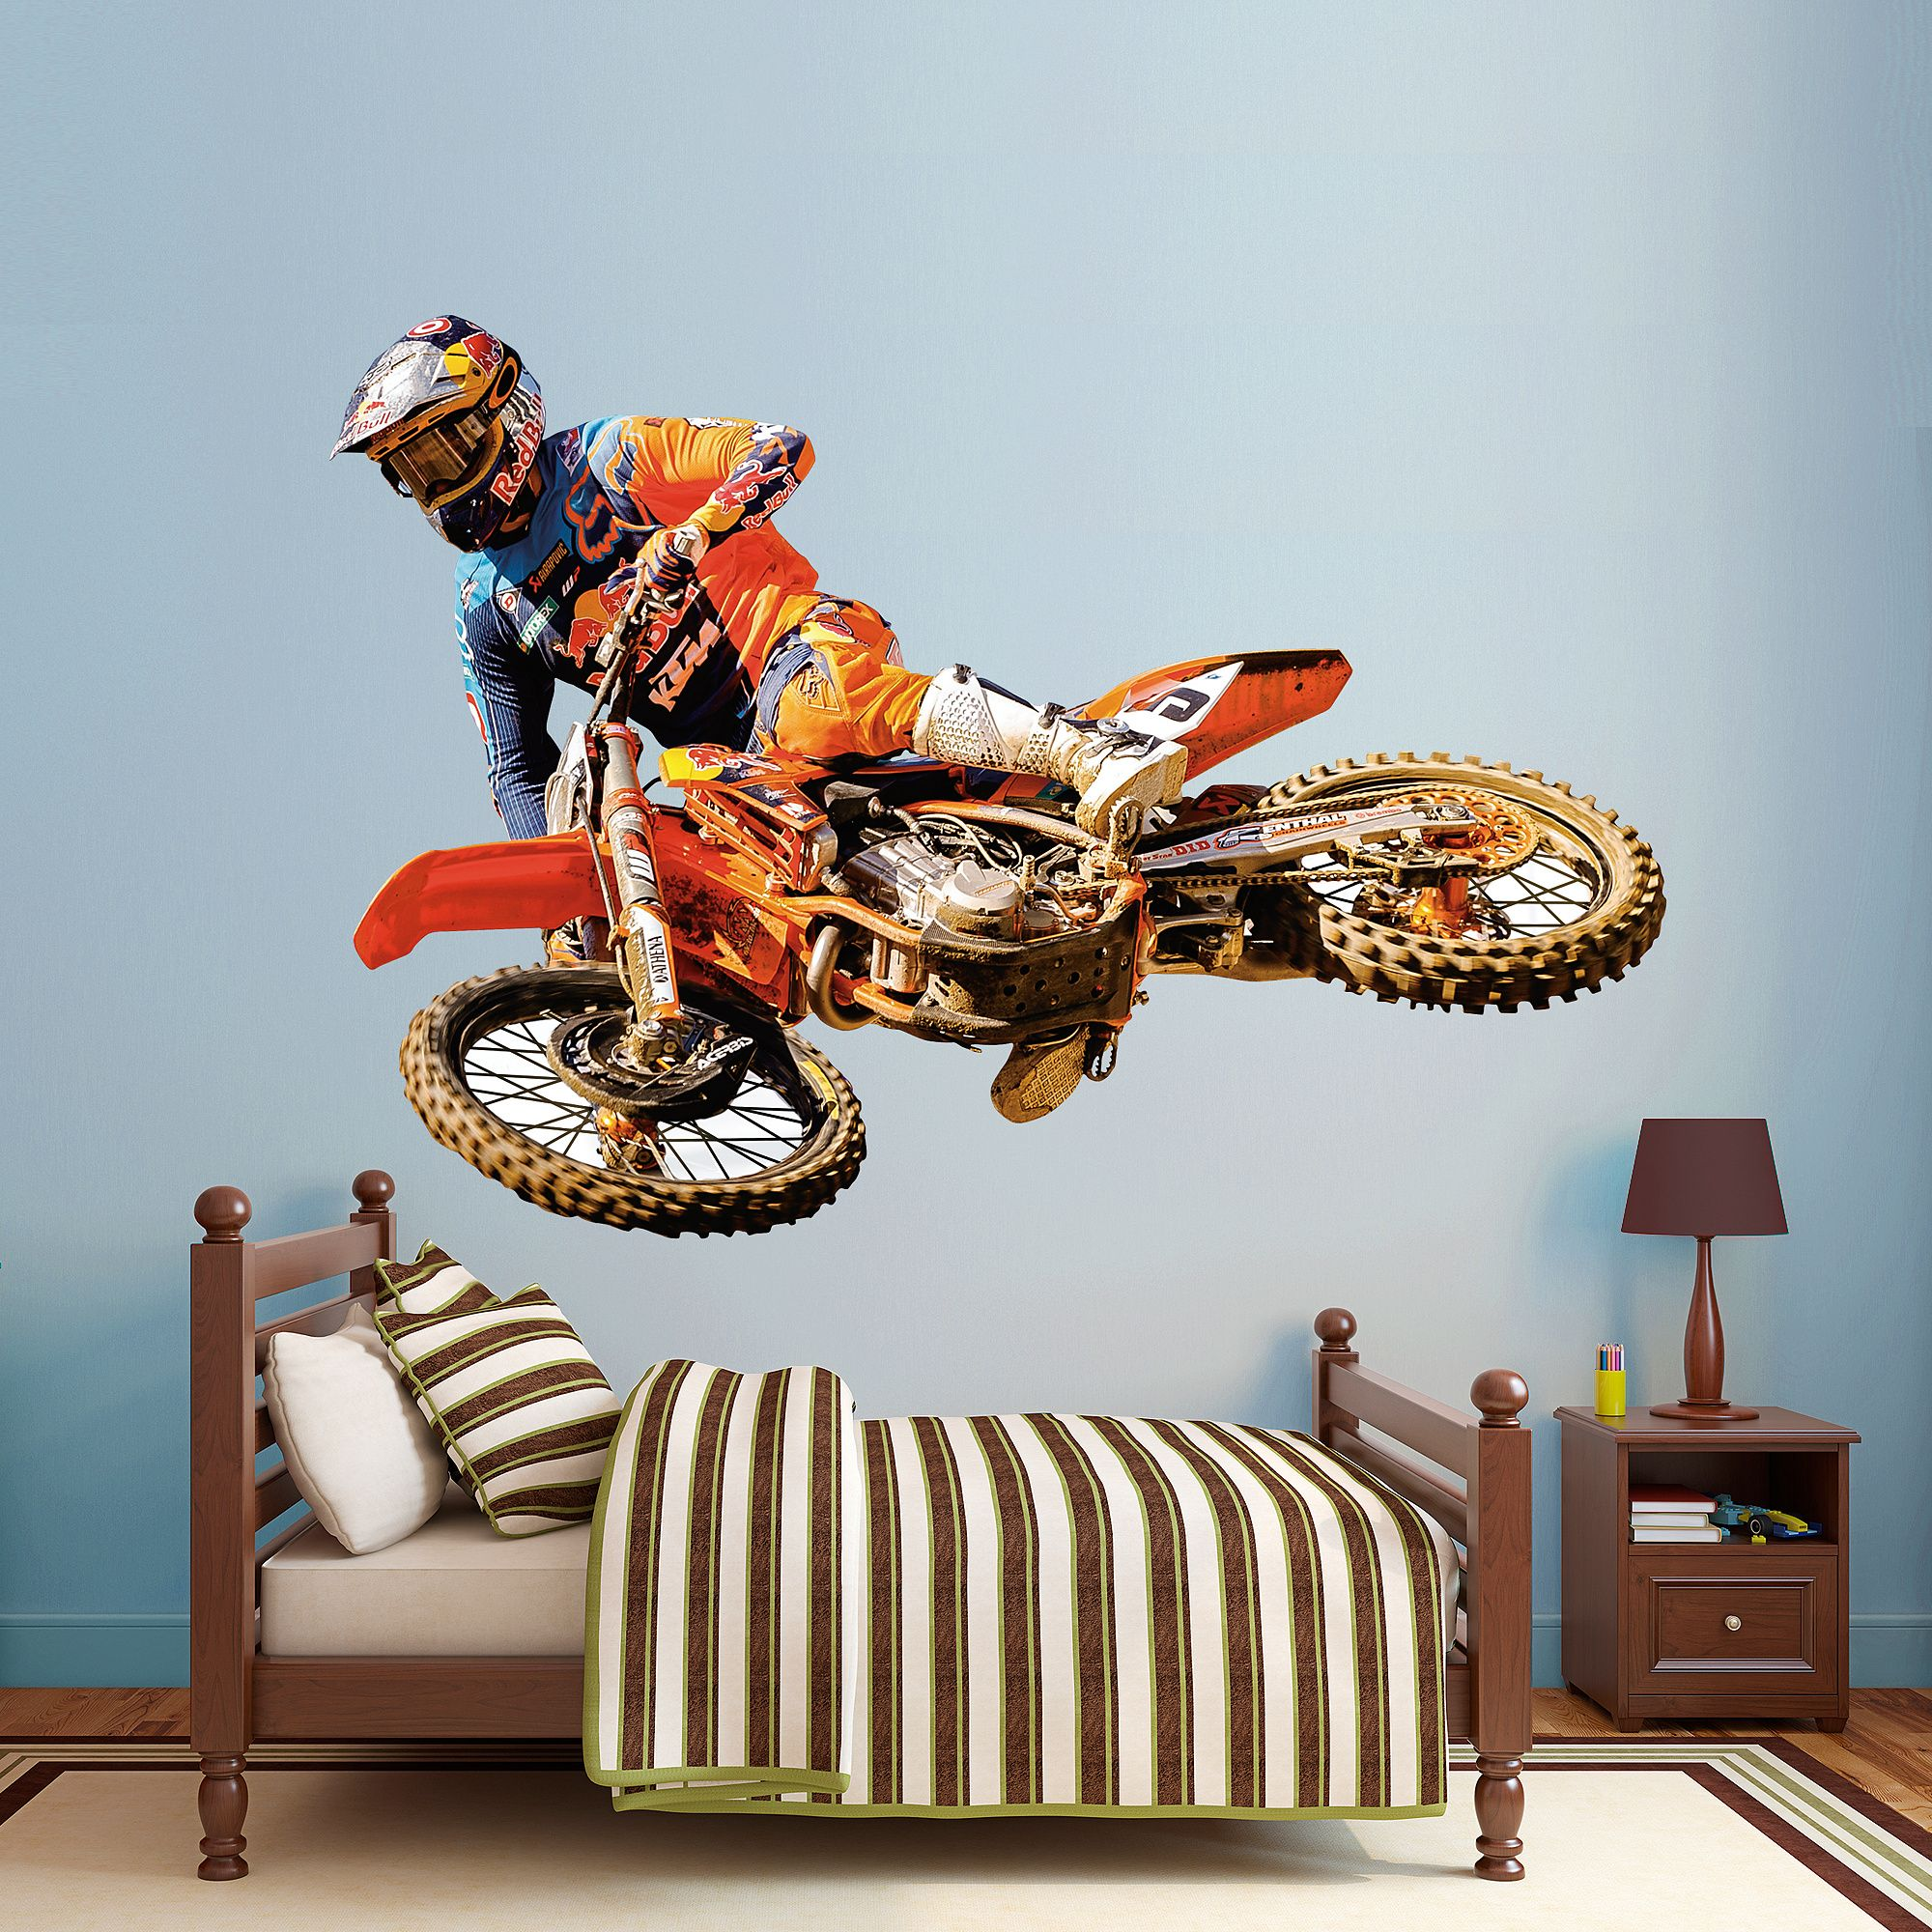 Motocross Wall Murals Ryan Dungey Officially Licensed Life Size Removable Wall